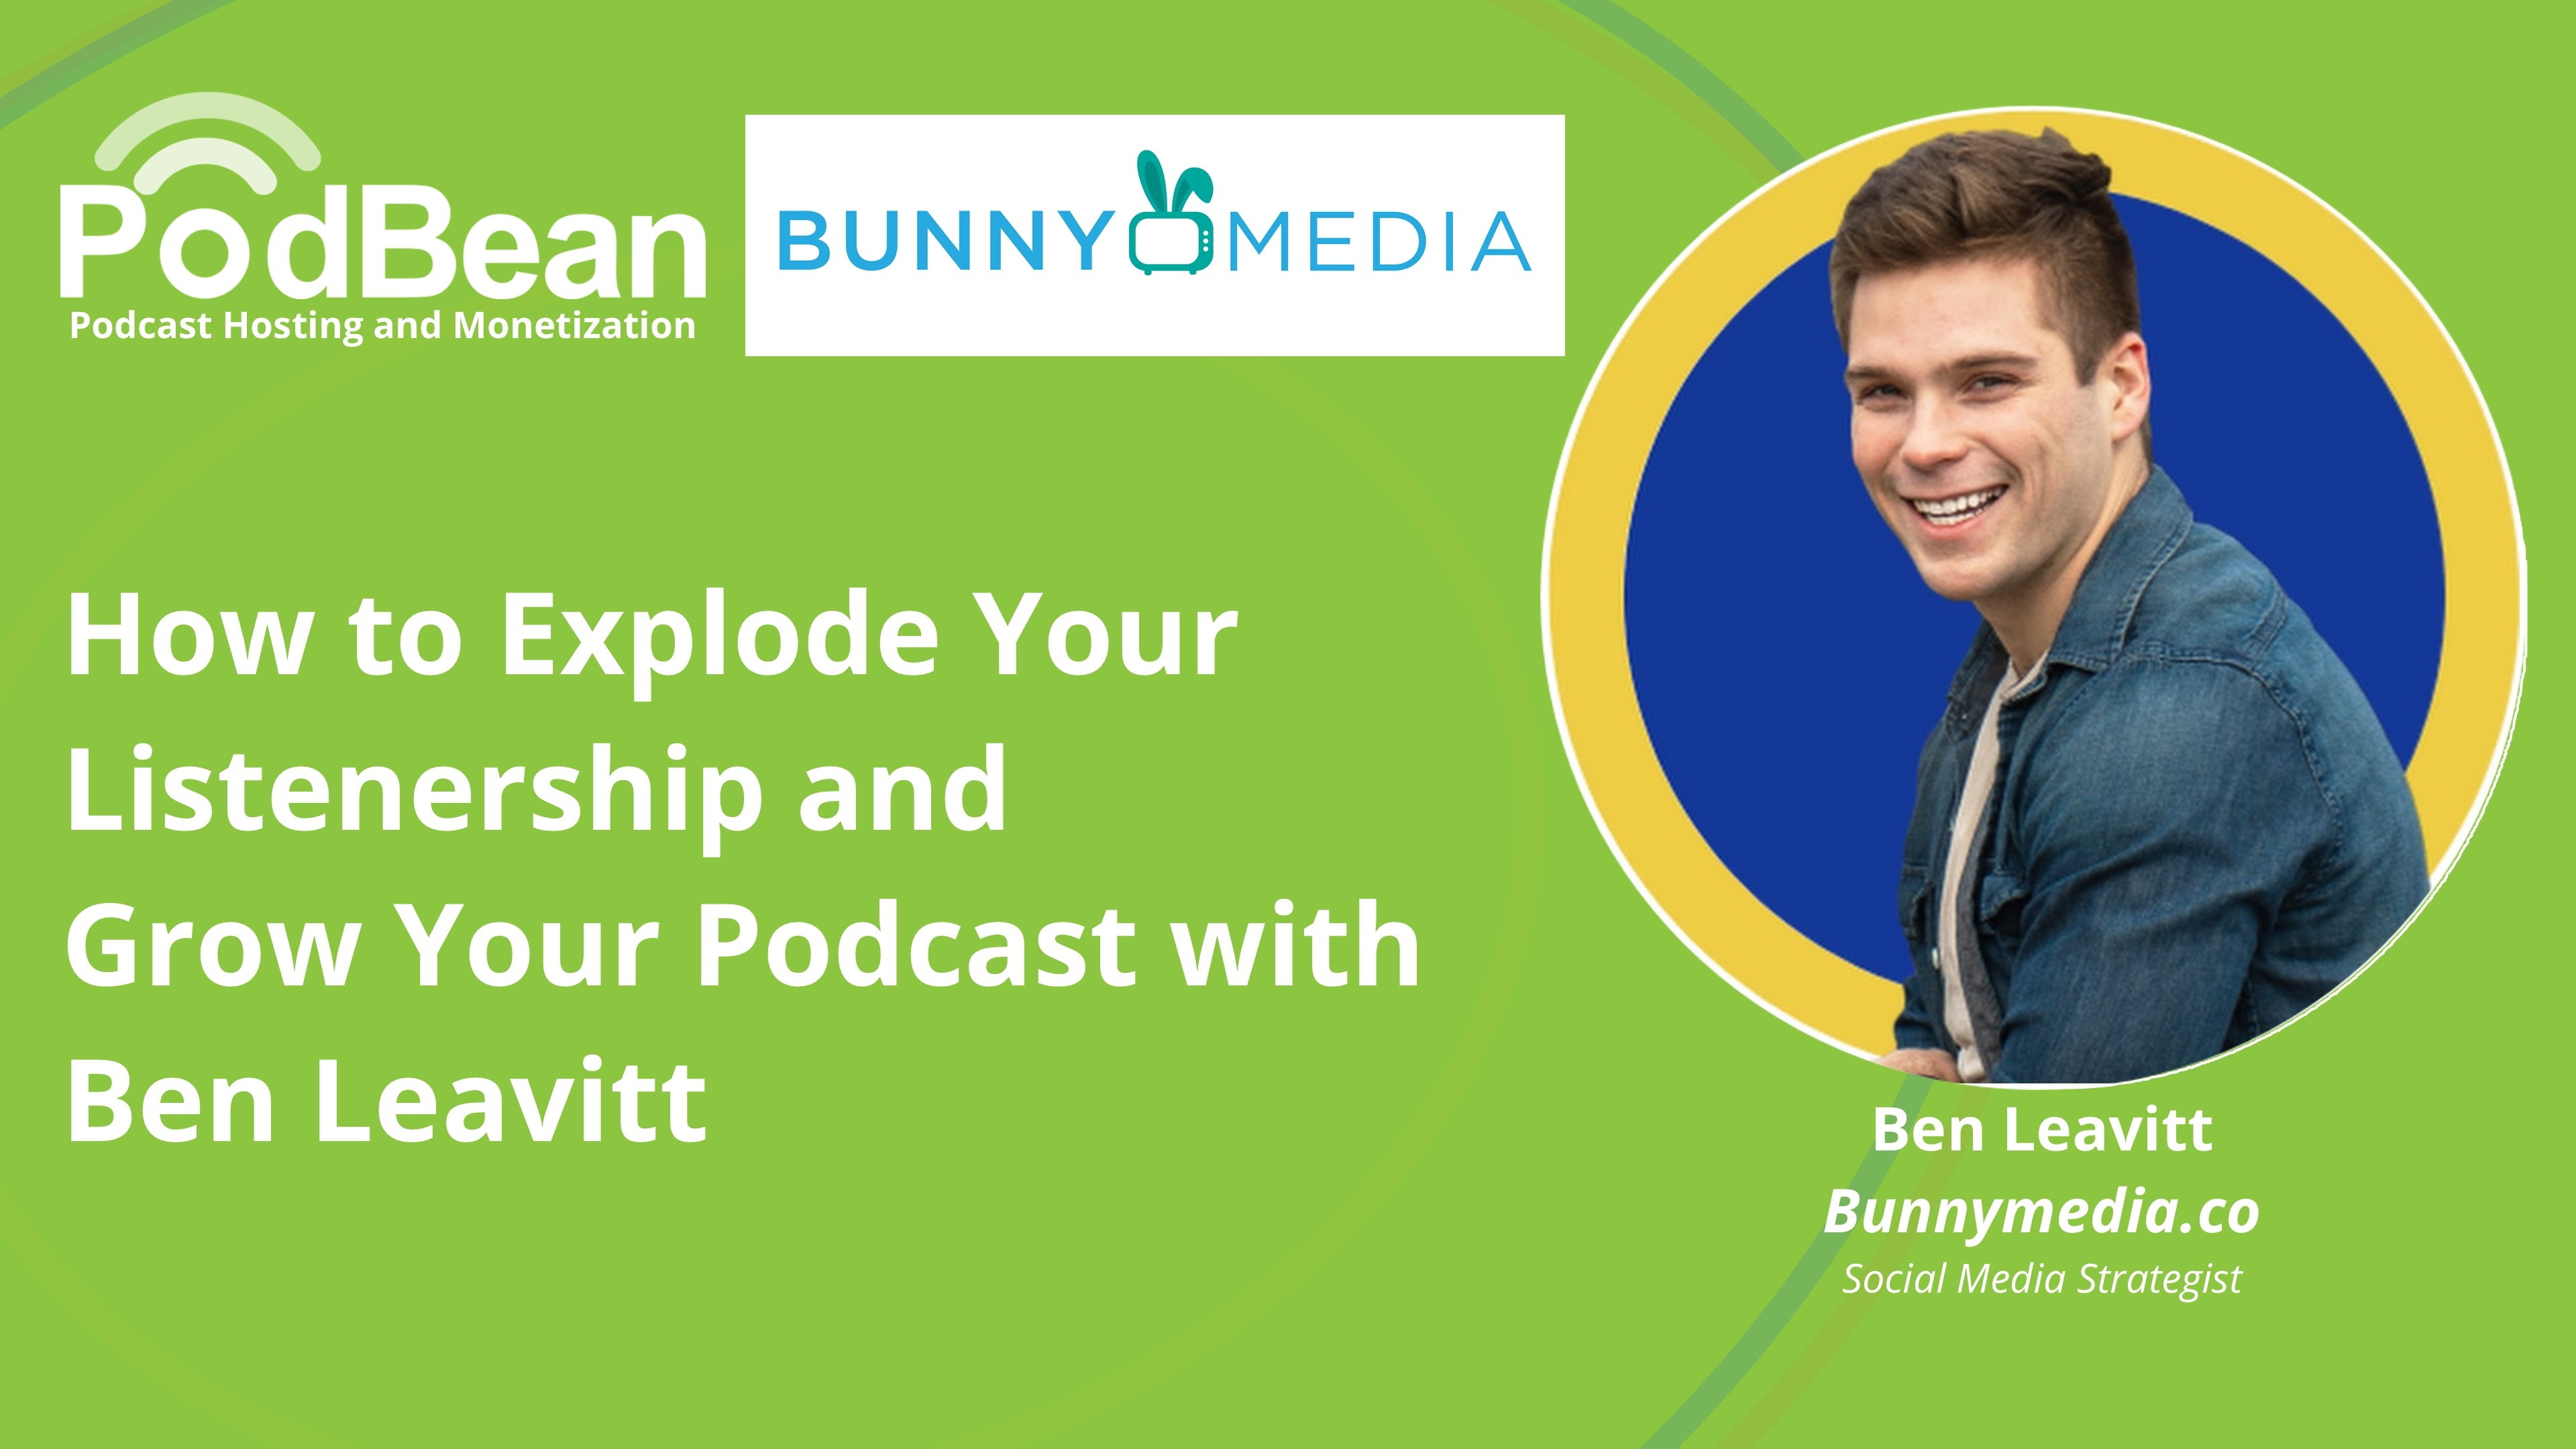 How to explode your listenership and grow your podcast with Ben Leavitt